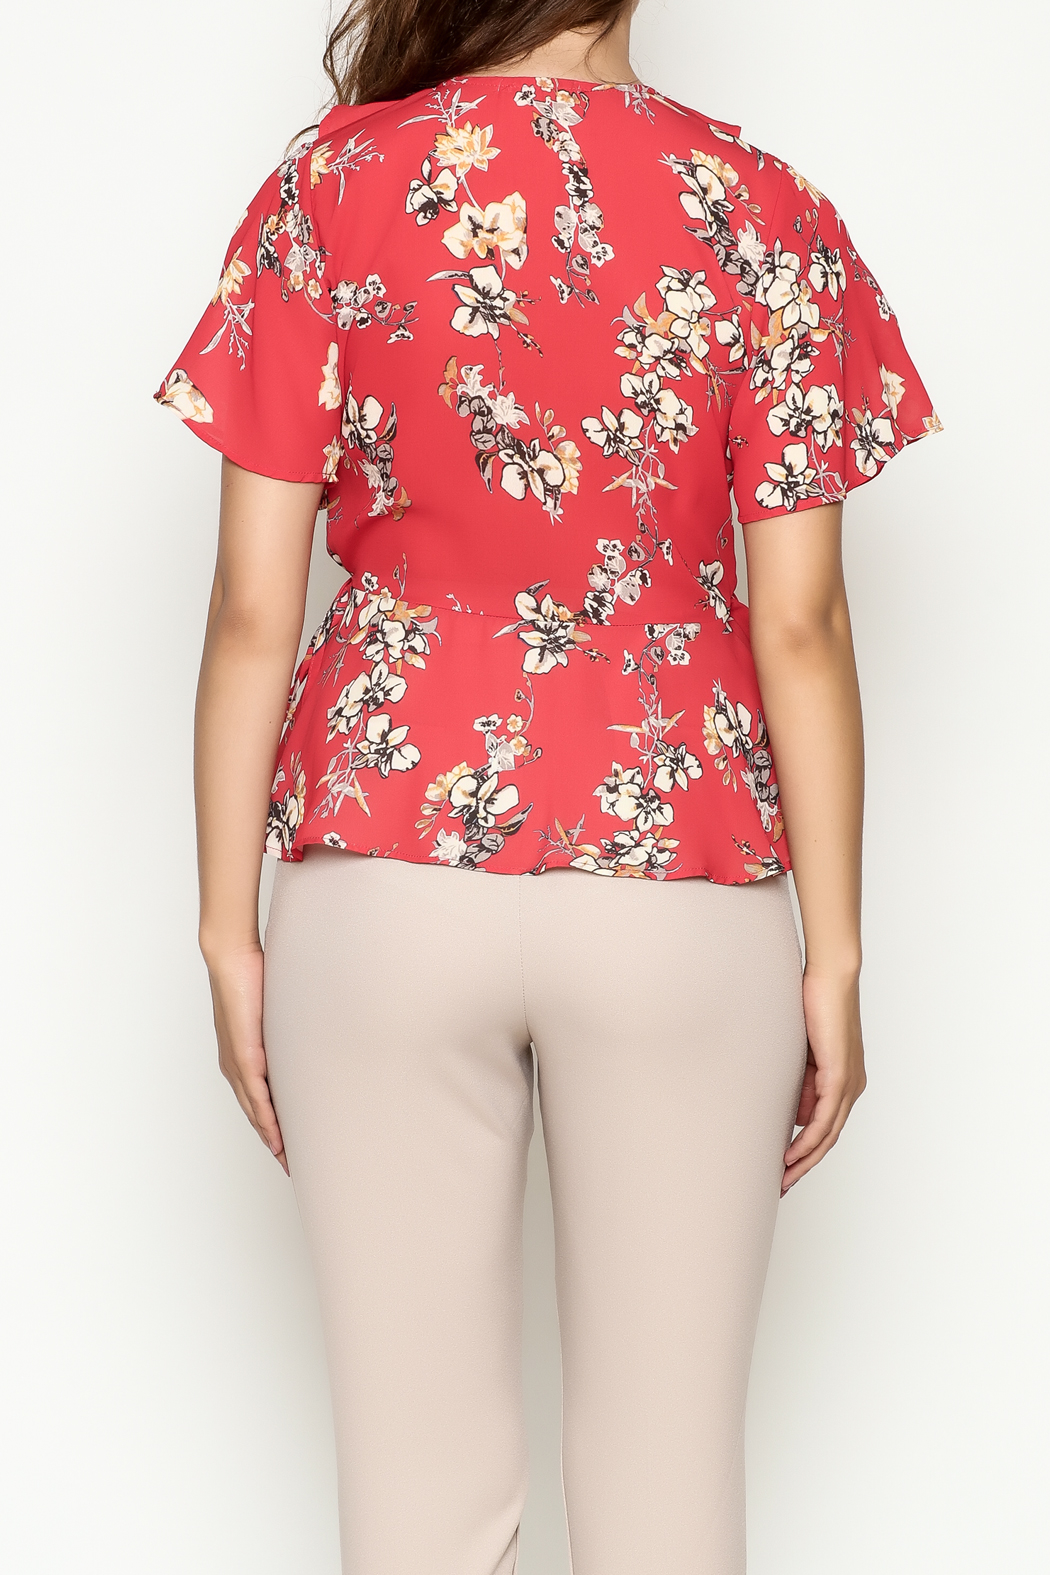 Marvy Fashion Floral Surplice Top - Back Cropped Image